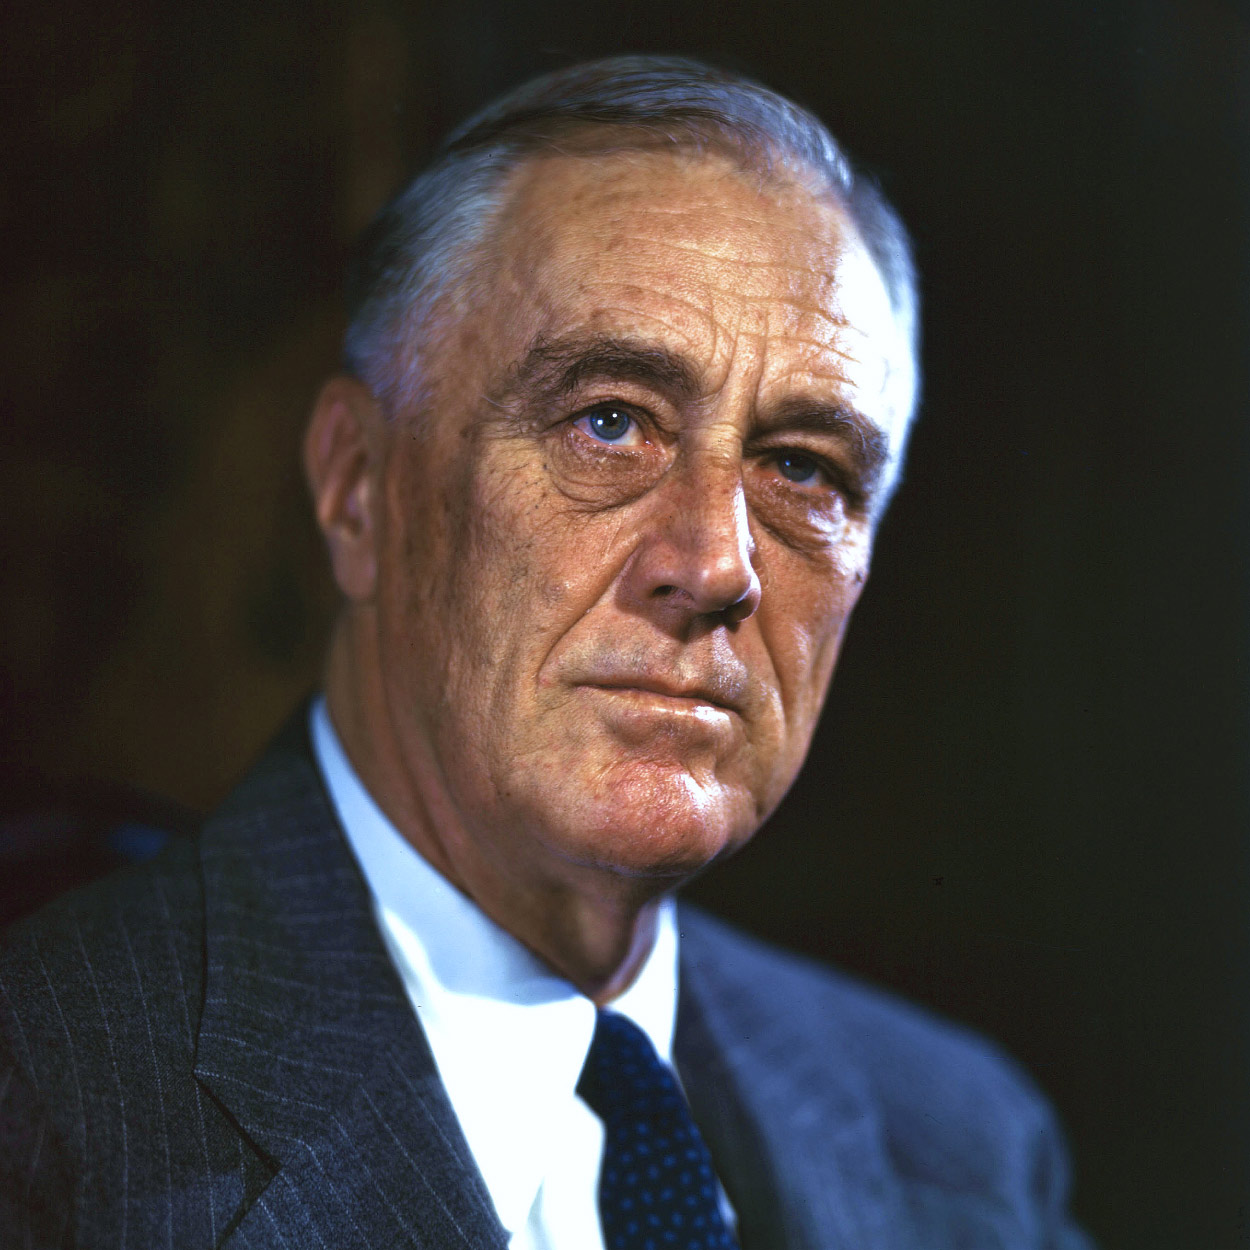 Portrait of Franklin D. Roosevelt, the 32nd President of the United States